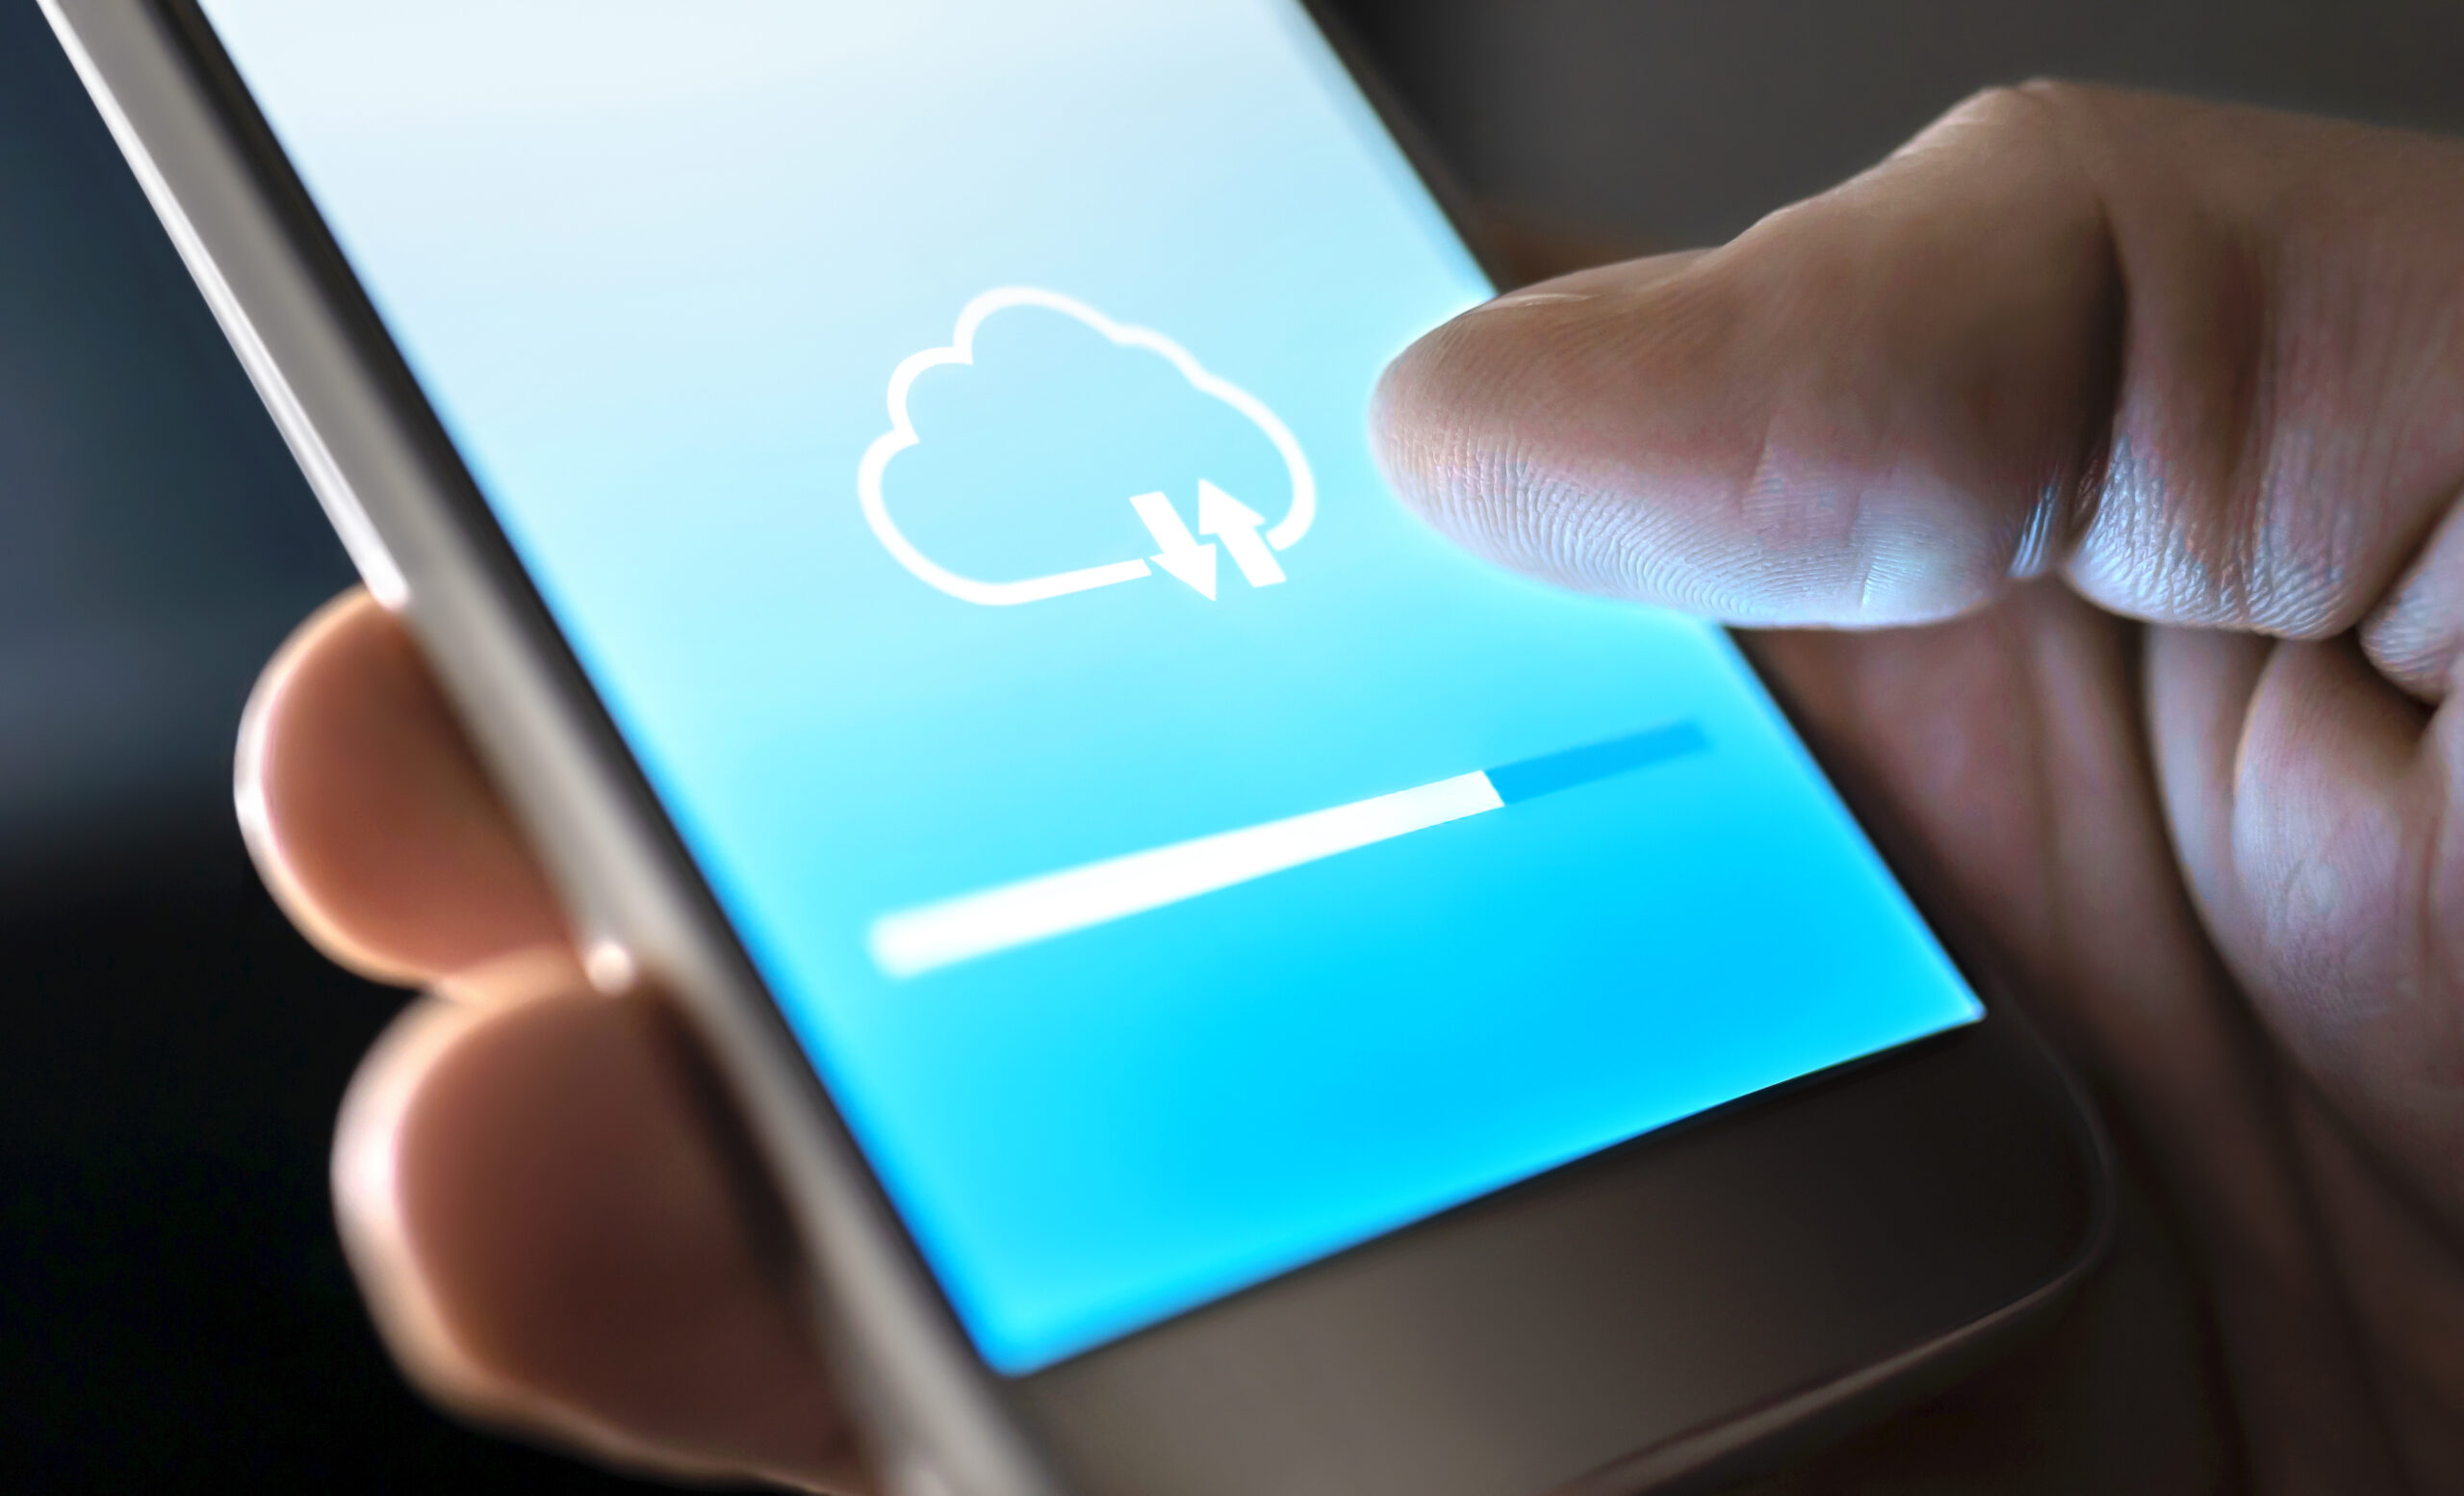 Close Up of Hand Holding Smartphone with Cloud Download Progress Bar on Screen